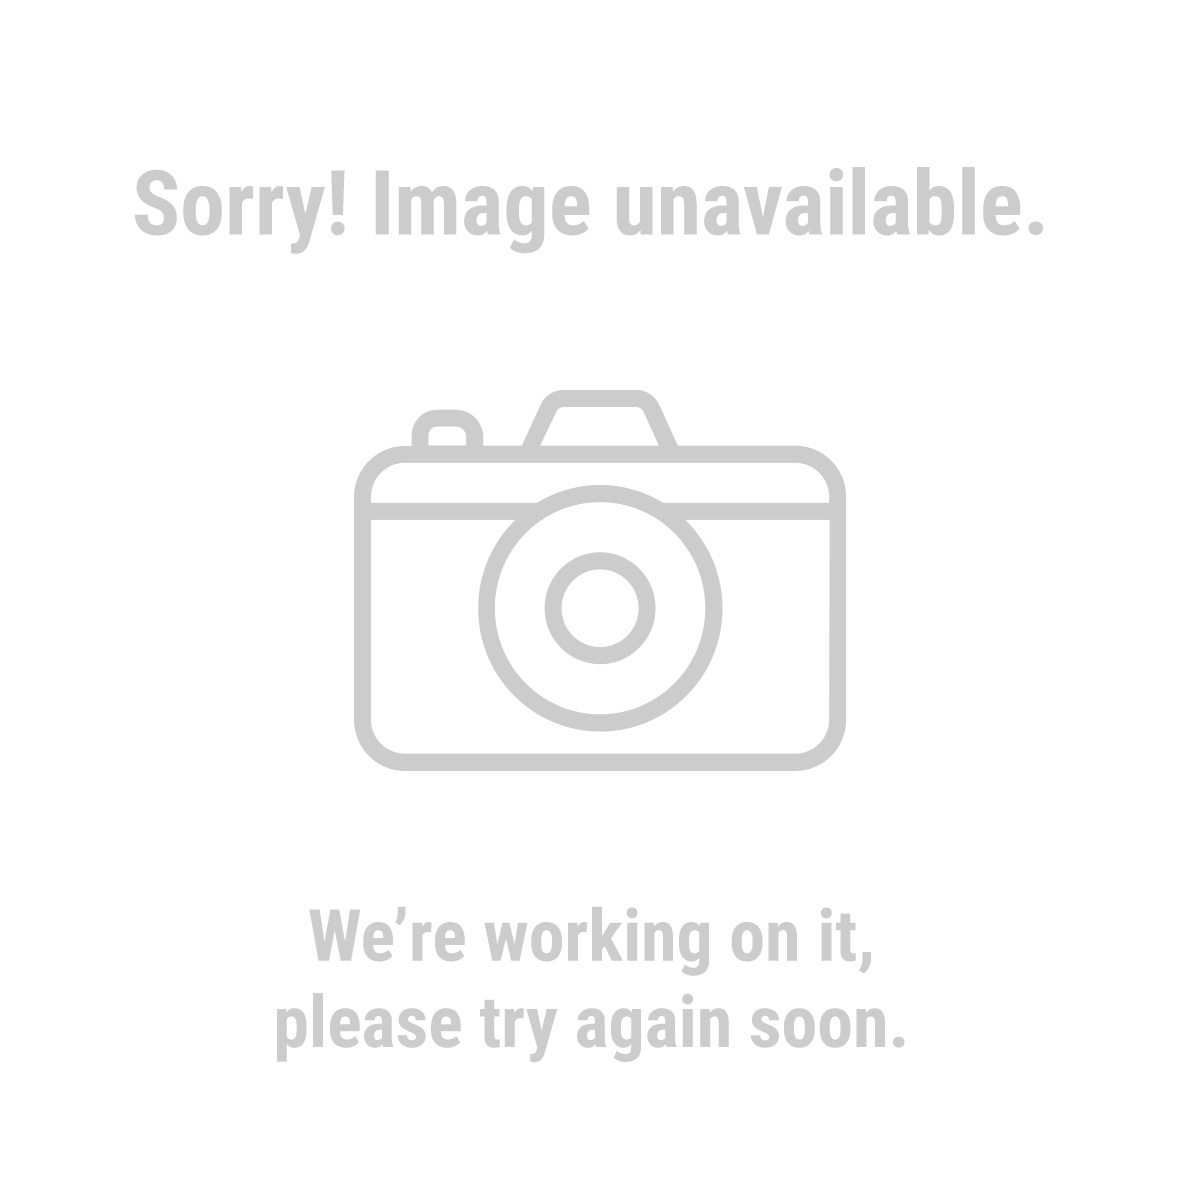 "Drill Master 94245 7-1/4"" Circular Saw with Blade"